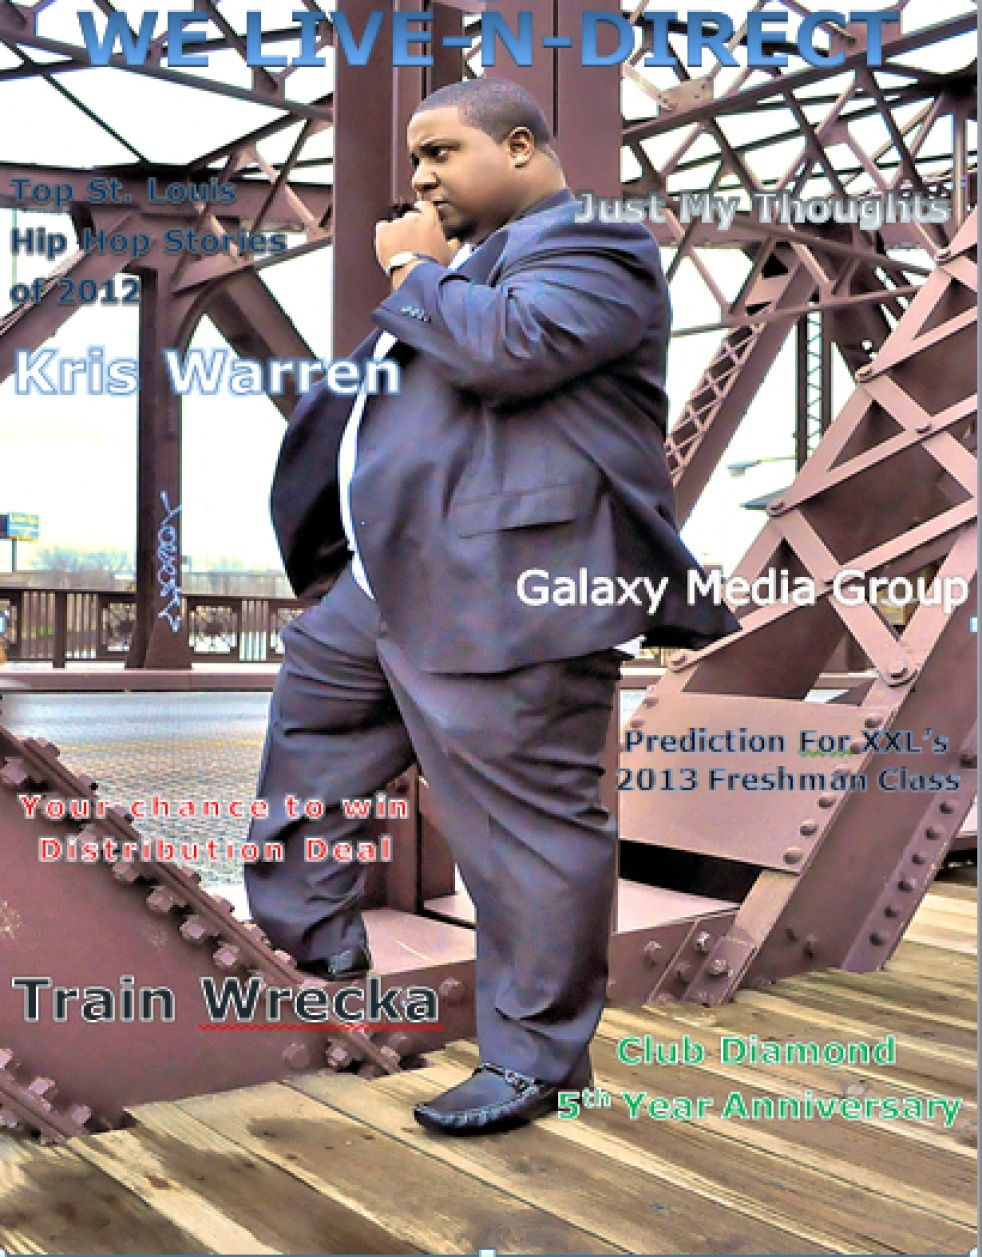 We Live N Direct Radio Show and Magazine - show cover